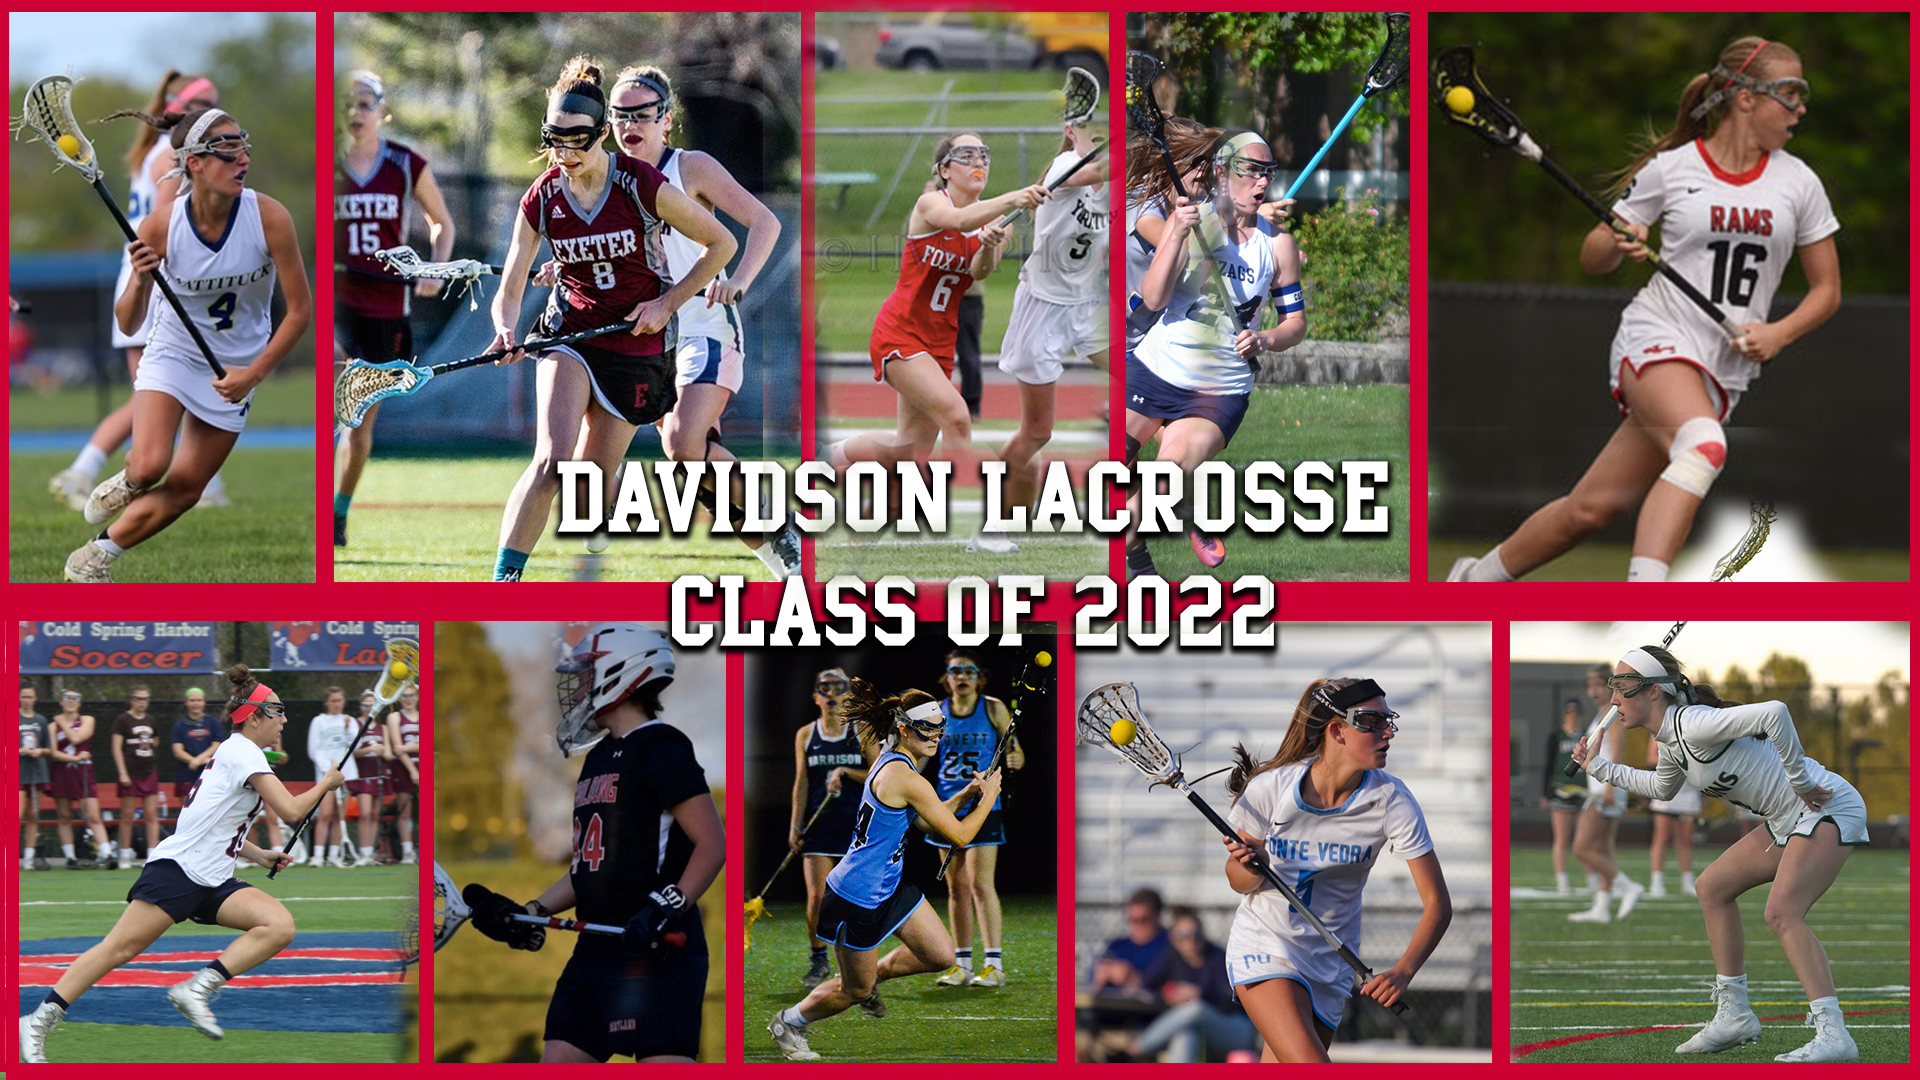 Davidson W  Lacrosse Welcomes 10 to Class of 2022